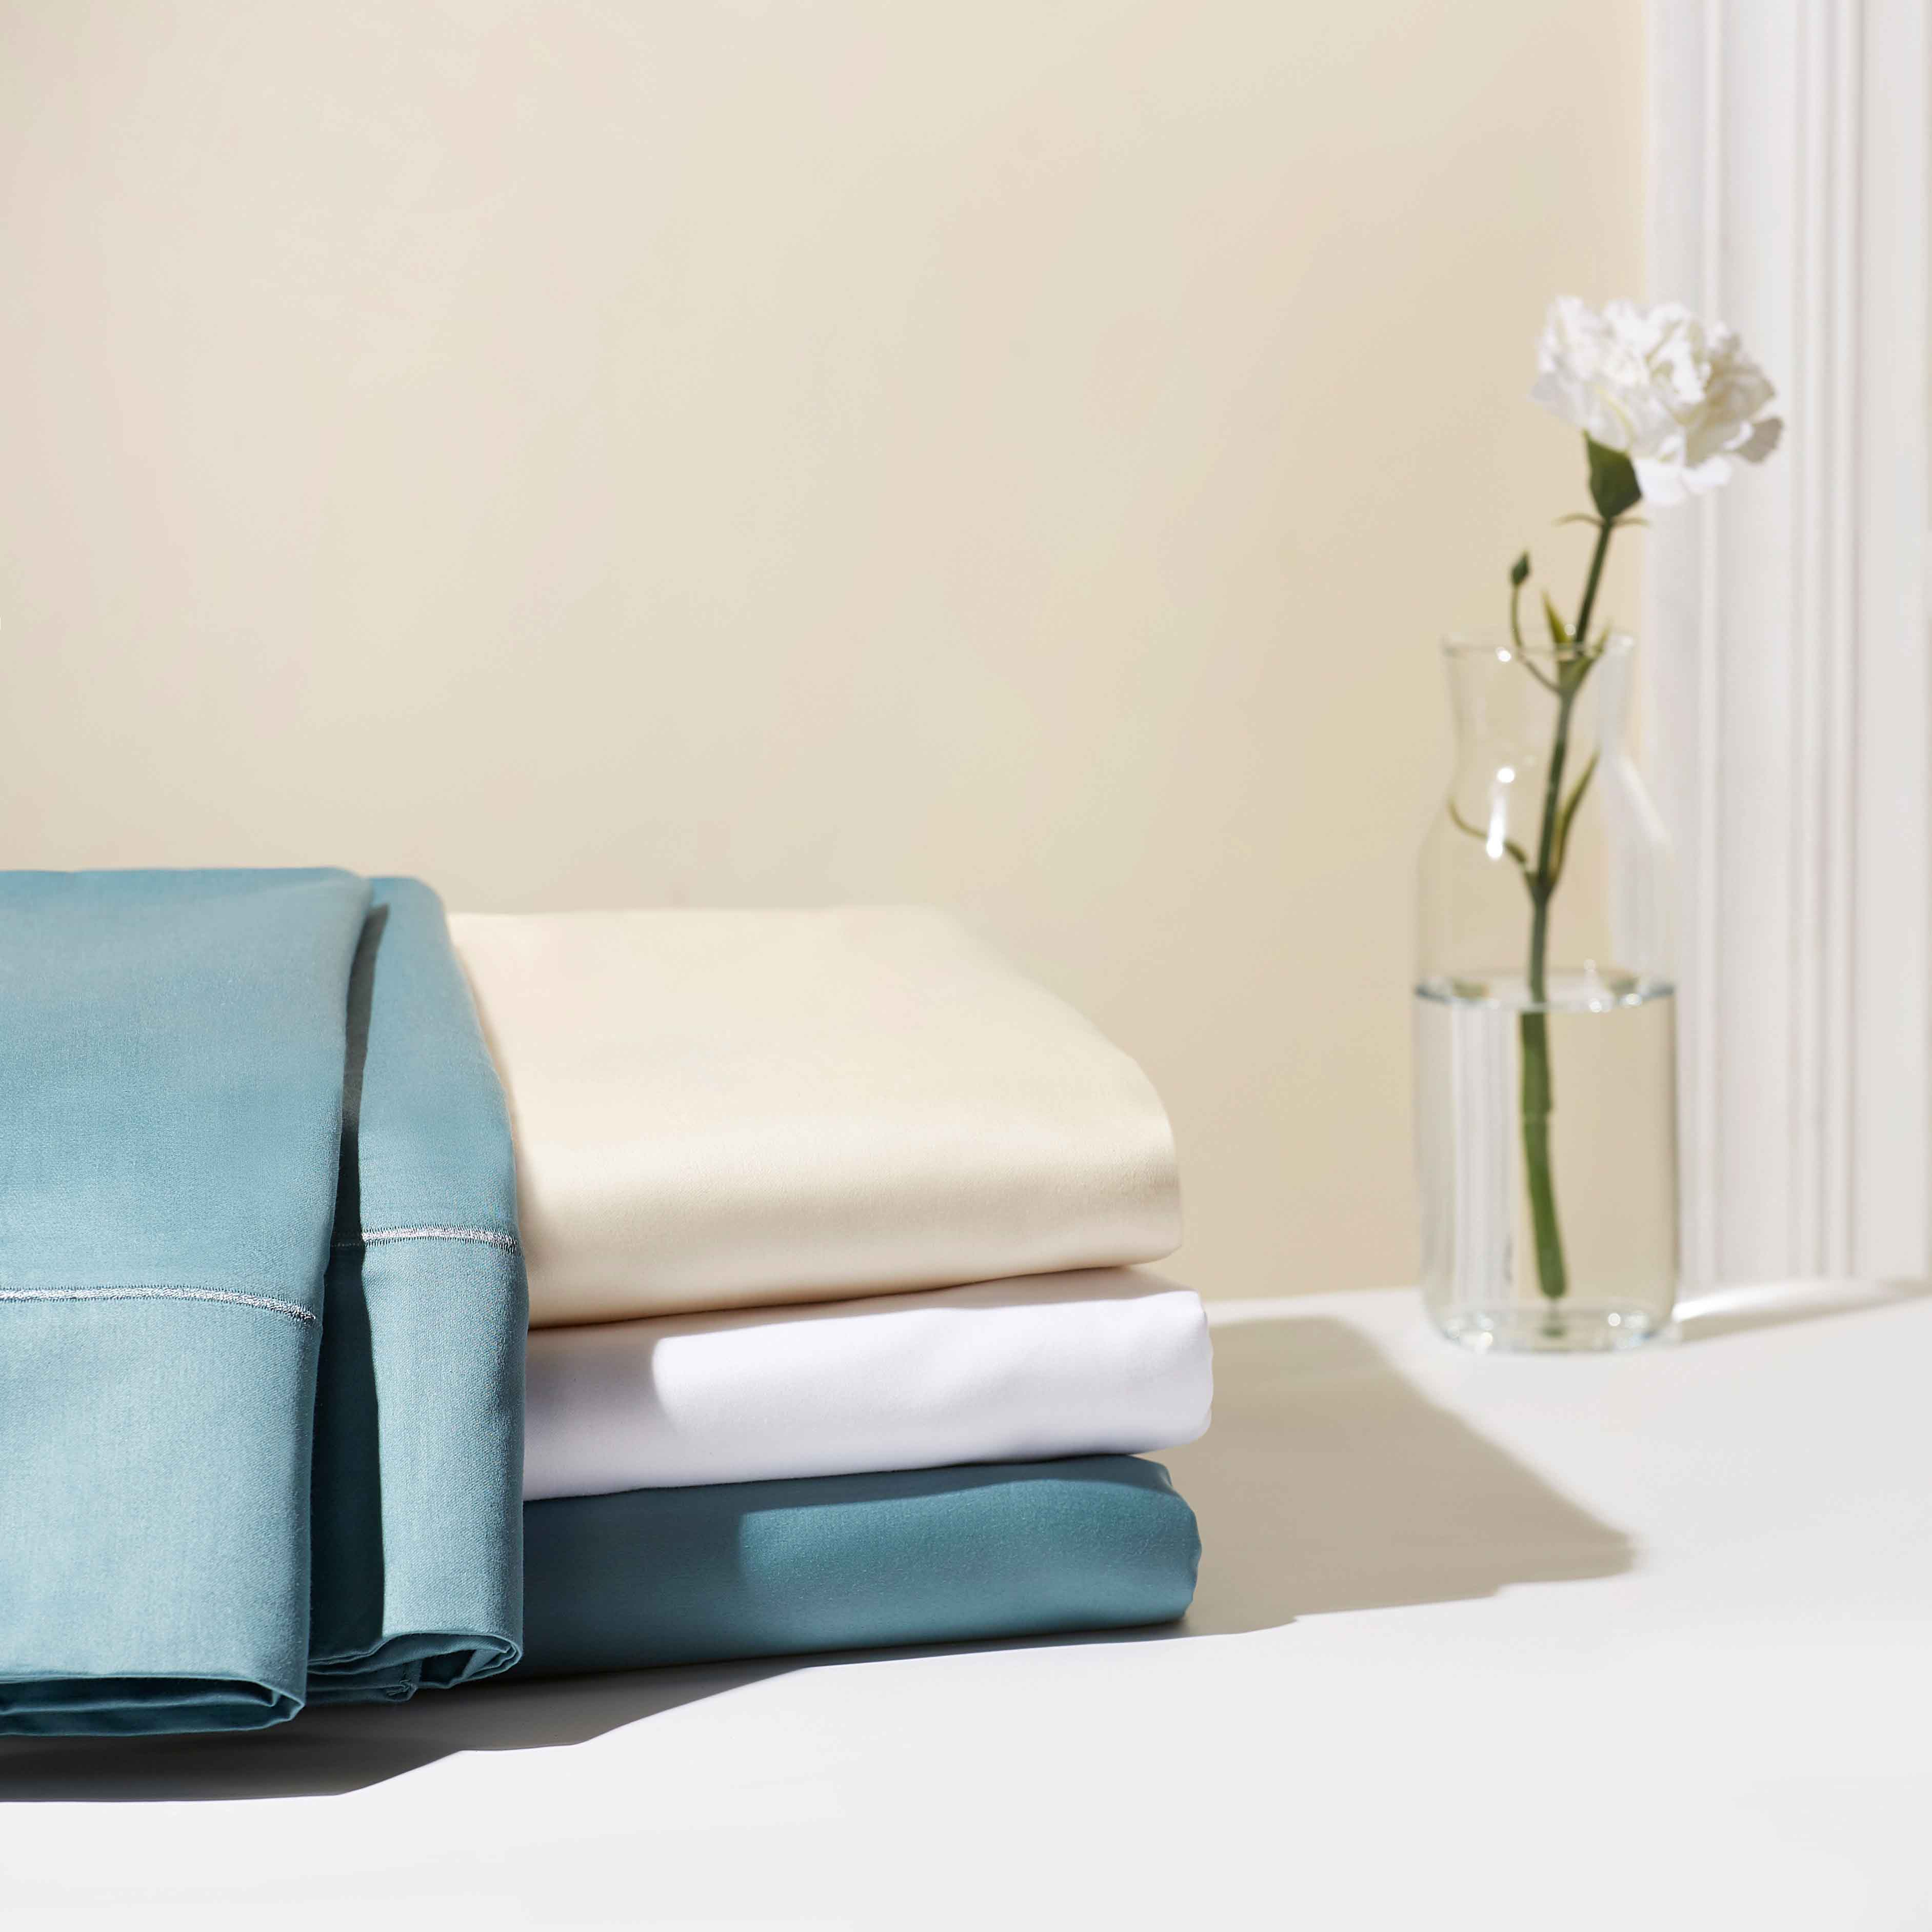 Hotel Style Egyptian Cotton 1000 Thread Count Bedding Sheet